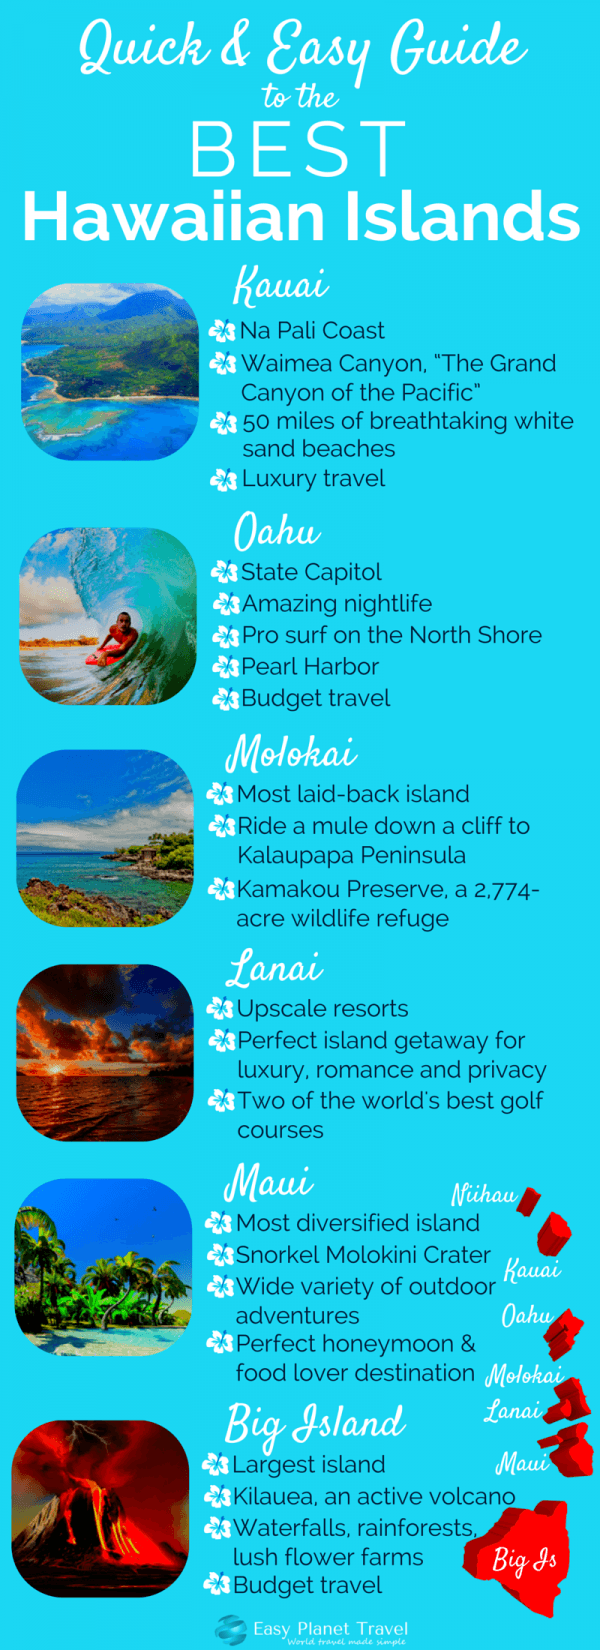 Quick and easy guide to the best Hawaiian Islands